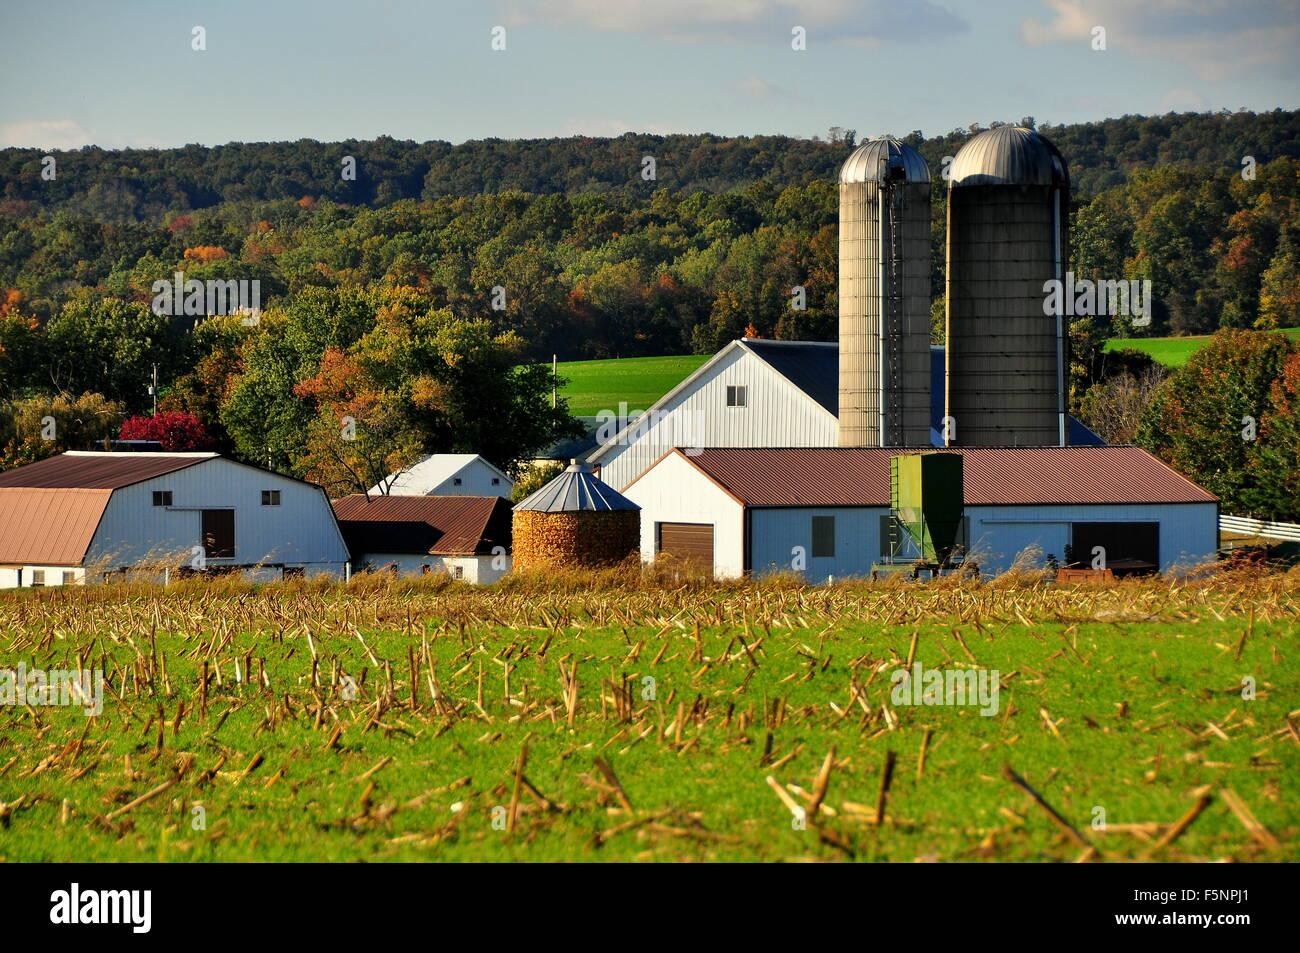 Amish crib for sale - Lancaster County Pennsylvania Amish Farm With Barns Silos And A Filled Corn Crib For Feeding Livestock In Winter